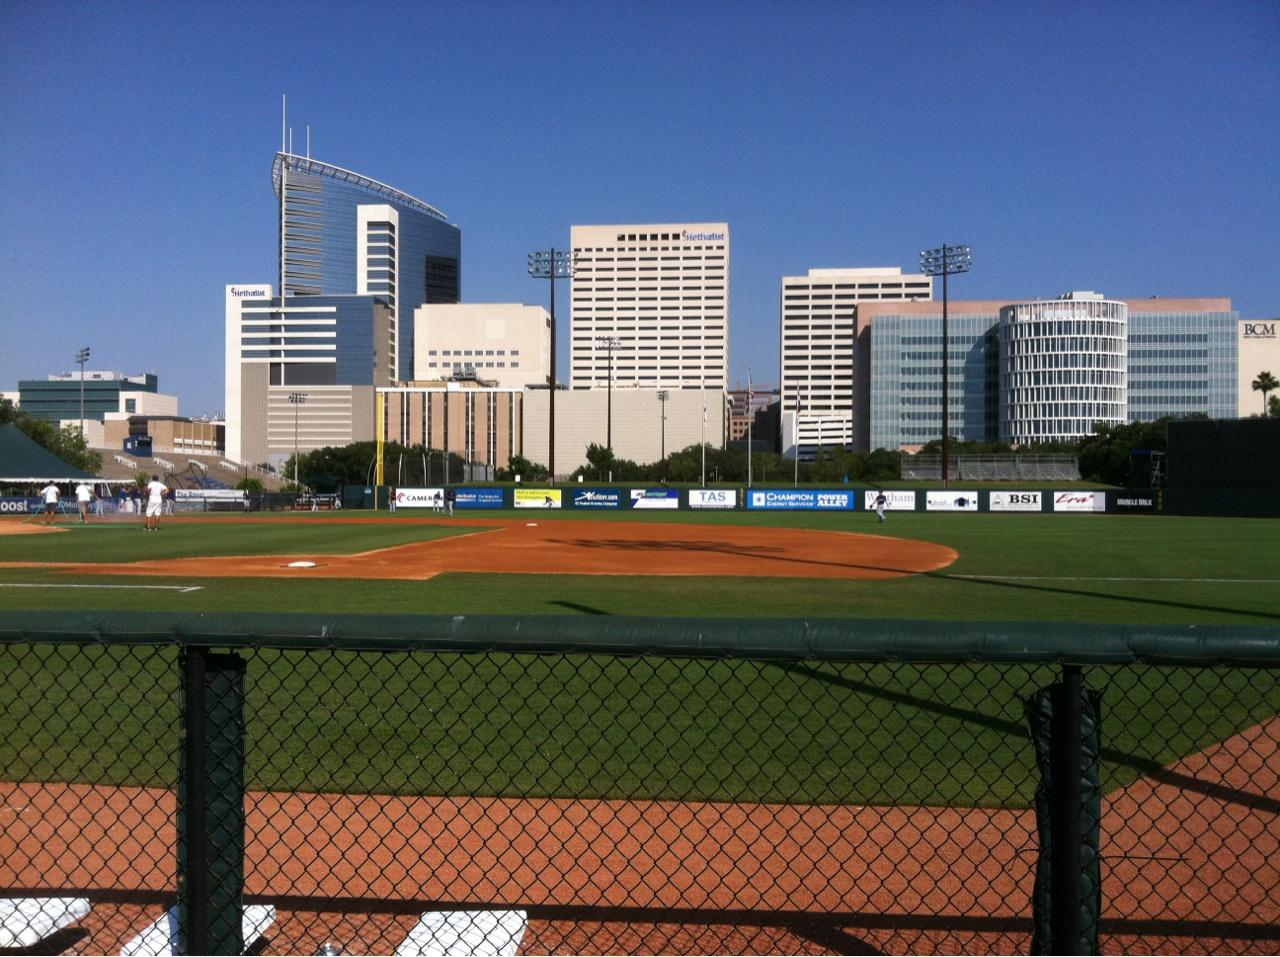 Reckling Park Section A Row 4 Seat 7